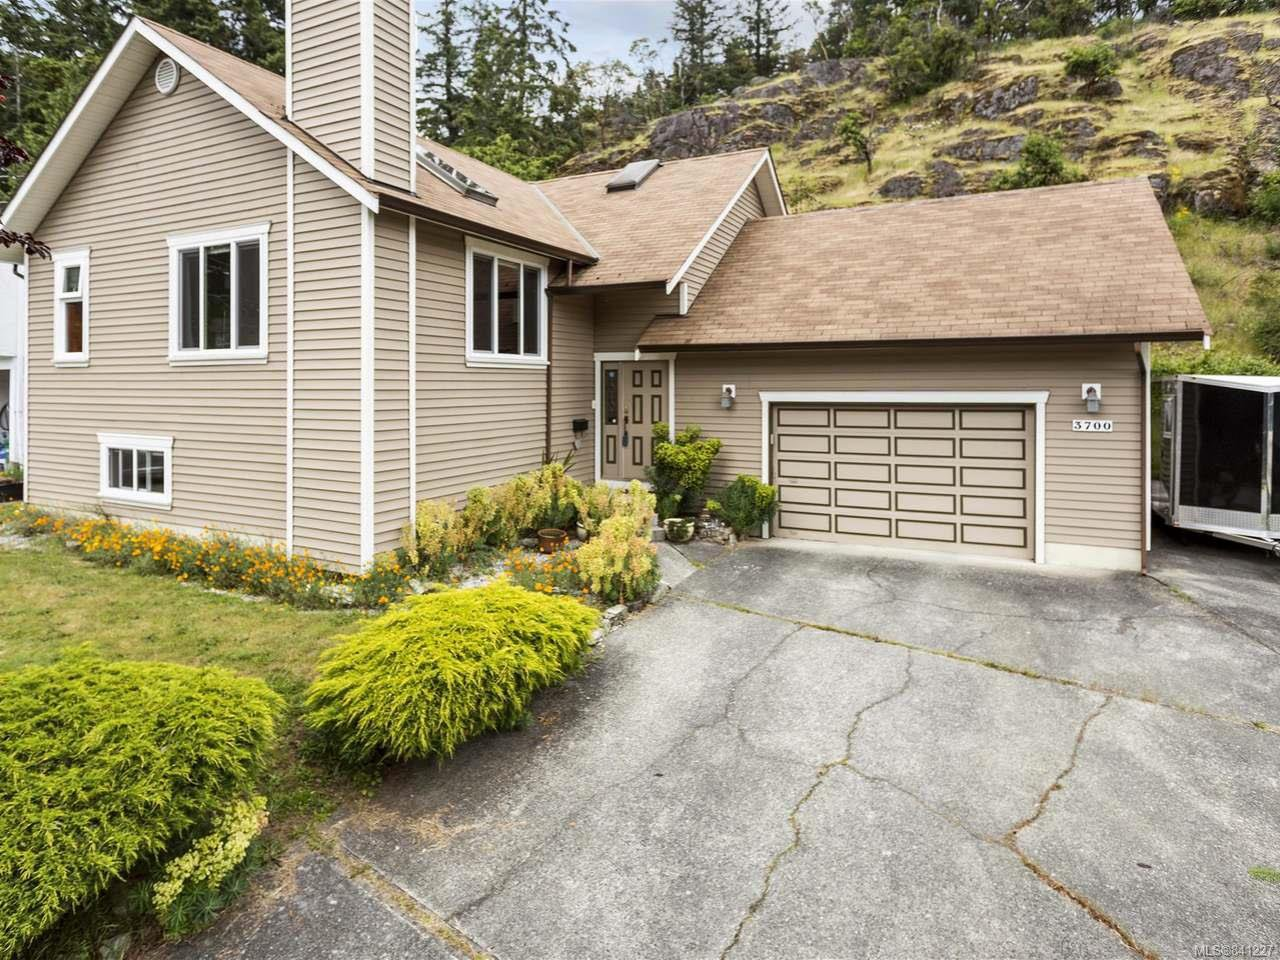 Main Photo: 3700 Howden Dr in NANAIMO: Na Uplands House for sale (Nanaimo)  : MLS®# 841227